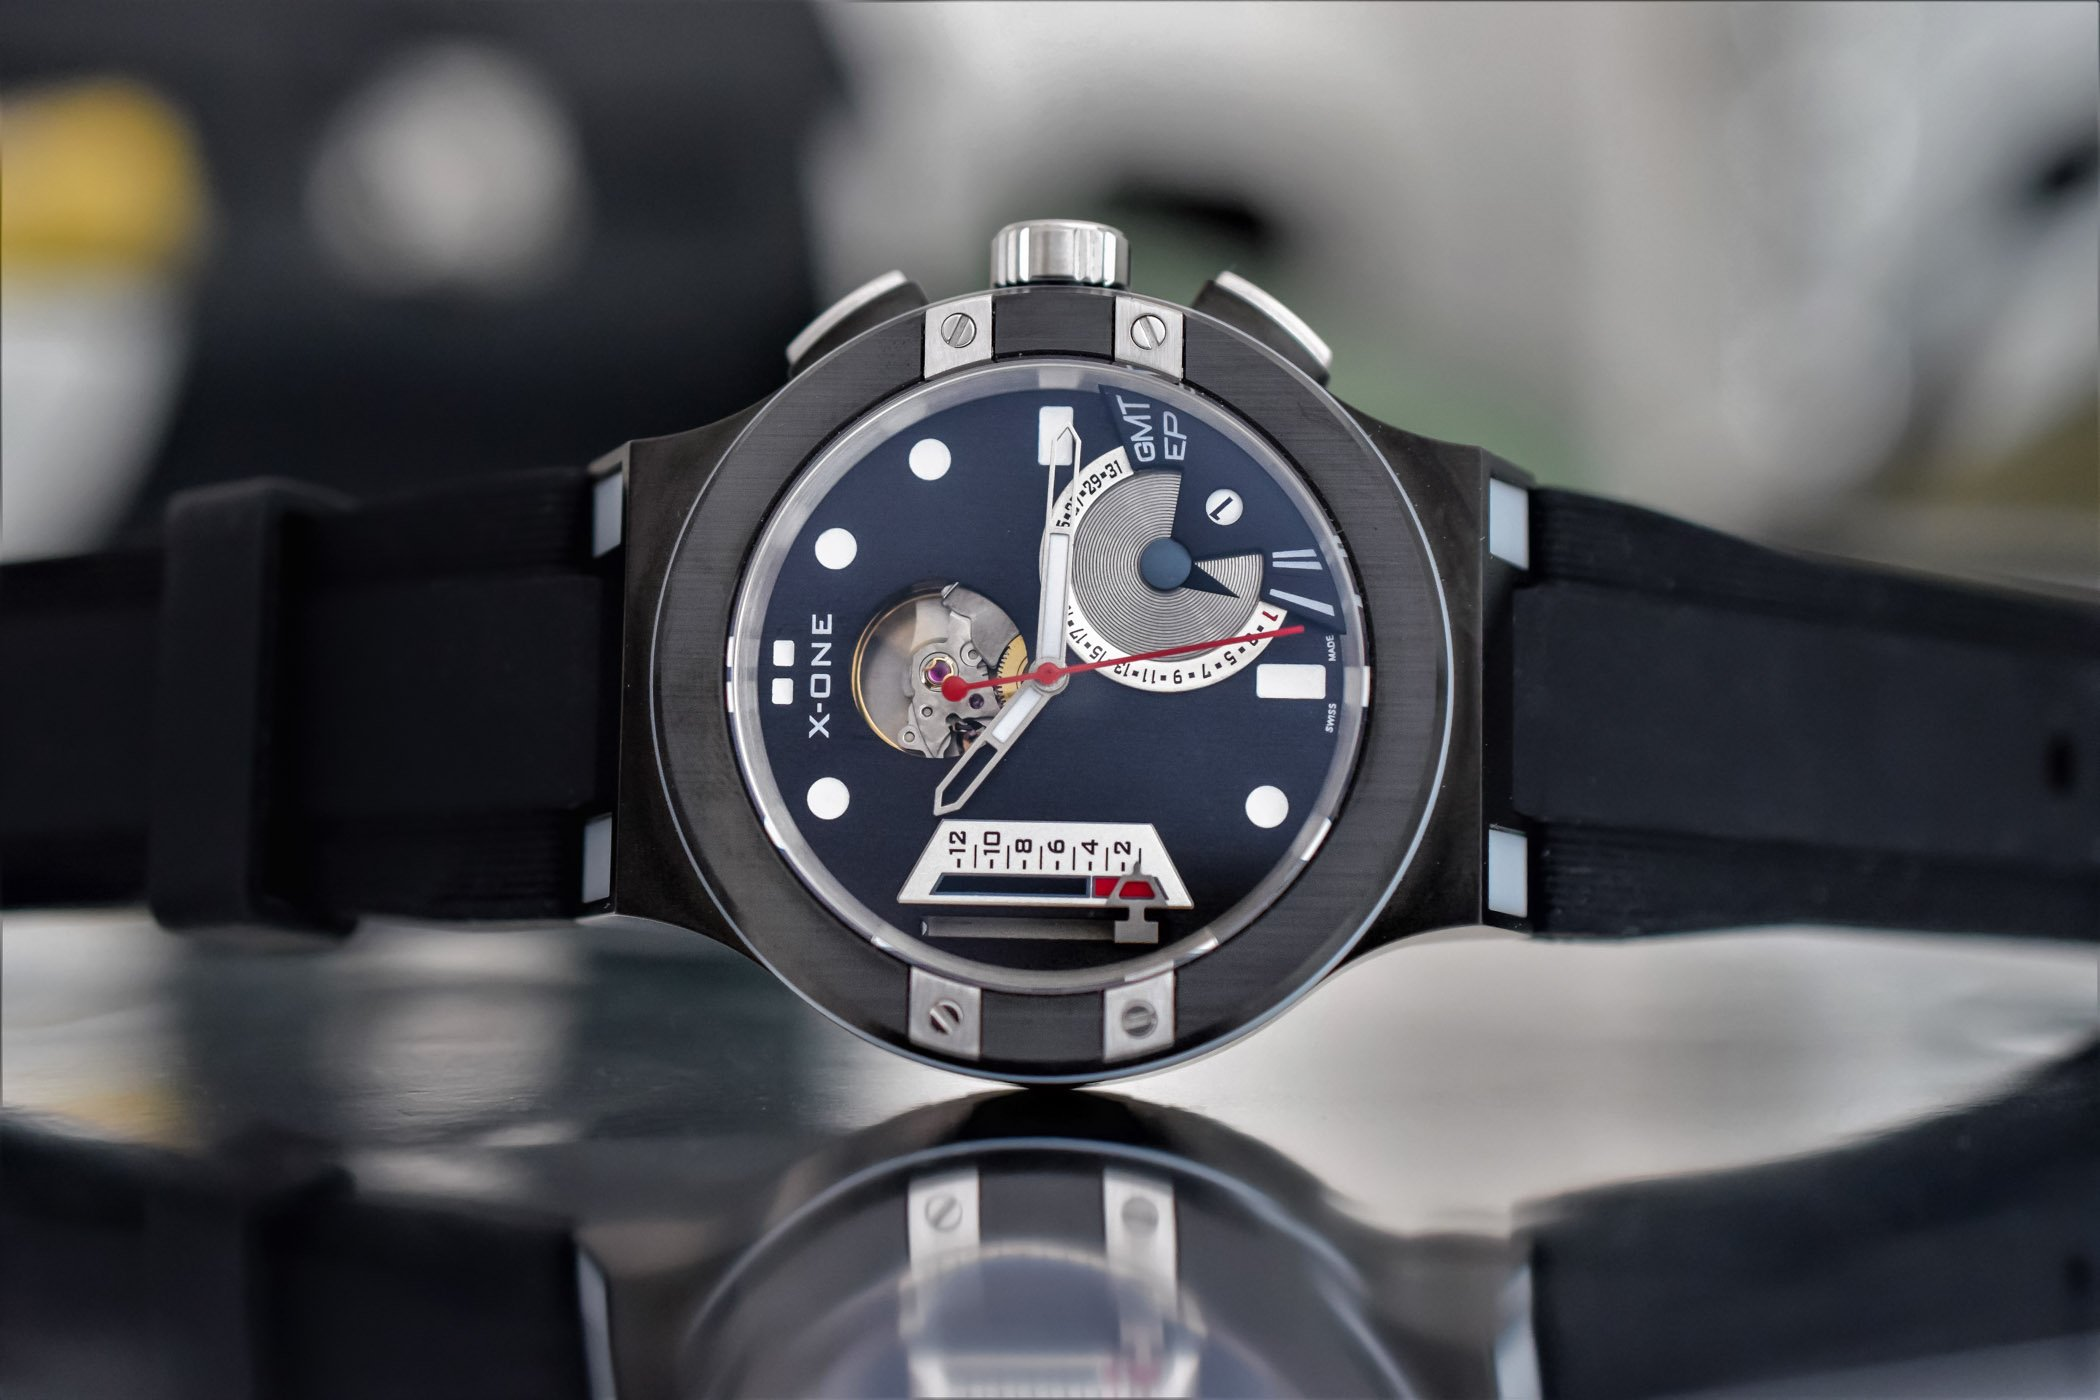 Mechanical smartwatches